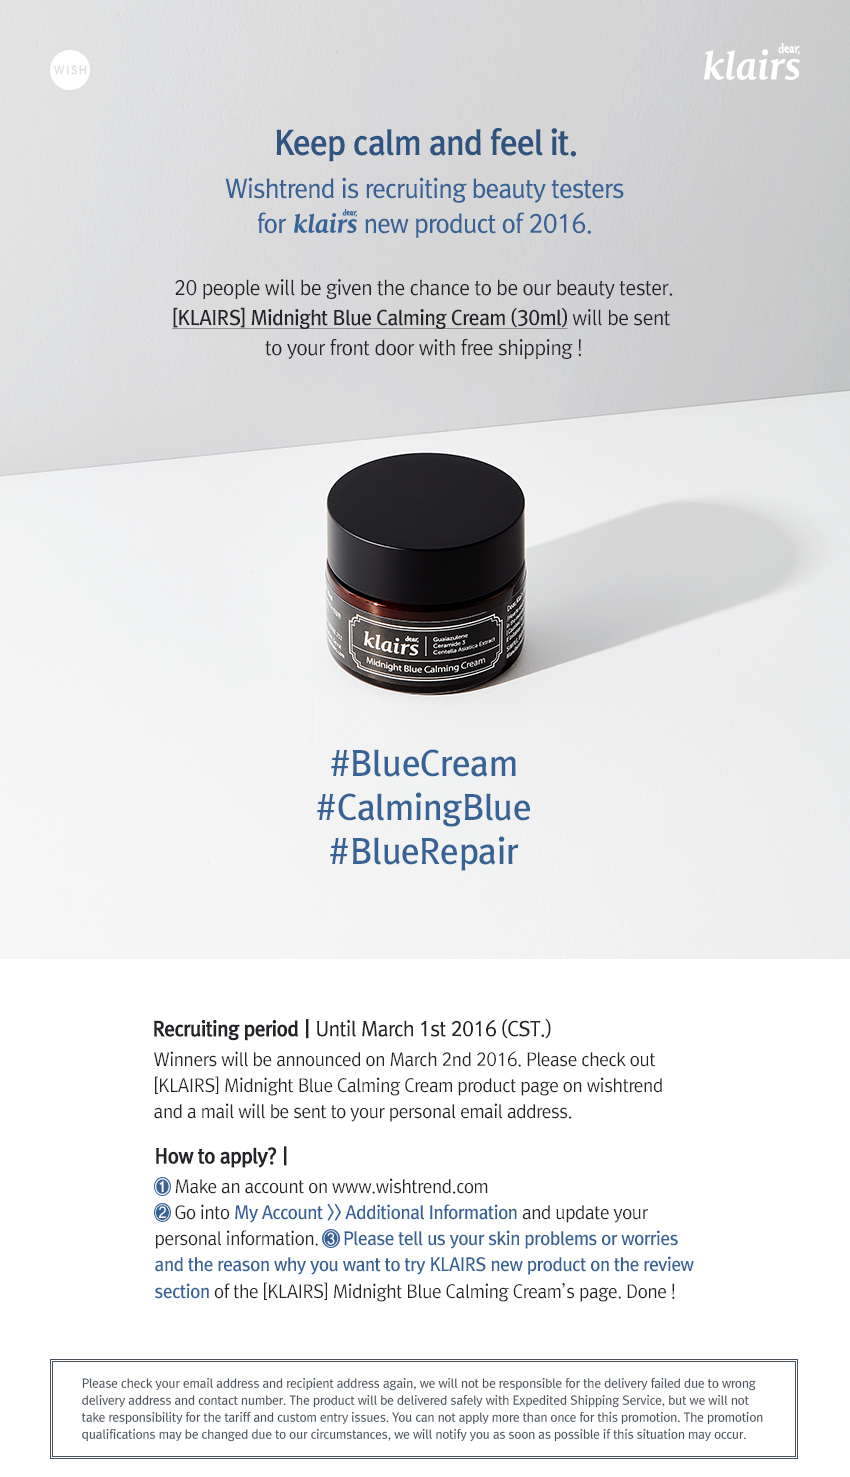 klairs-midnight-blue-calming-cream-beauty-tester-wishtrend